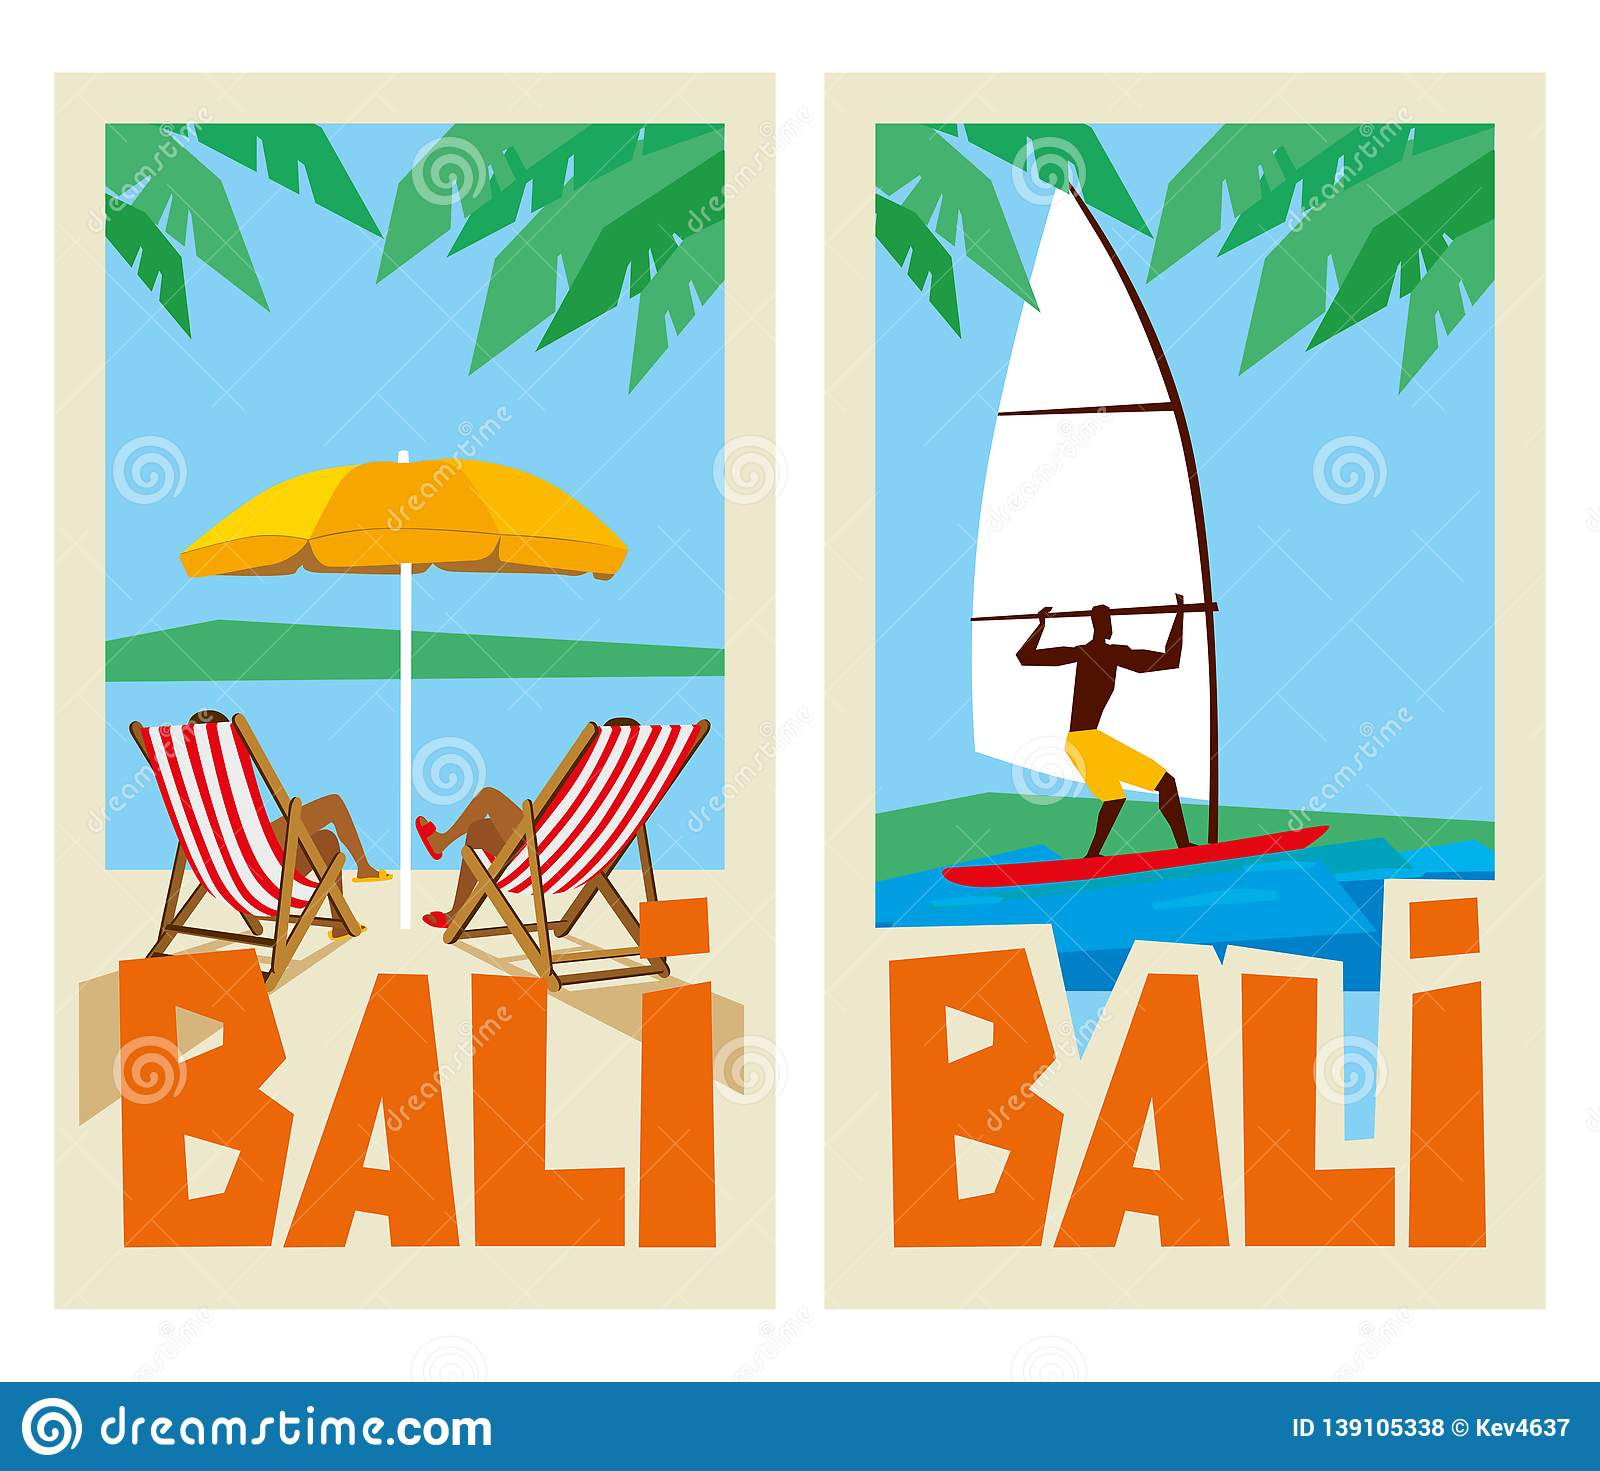 Bali Travel Stickers Sun Beds Under The Umbrella And Windsurfing